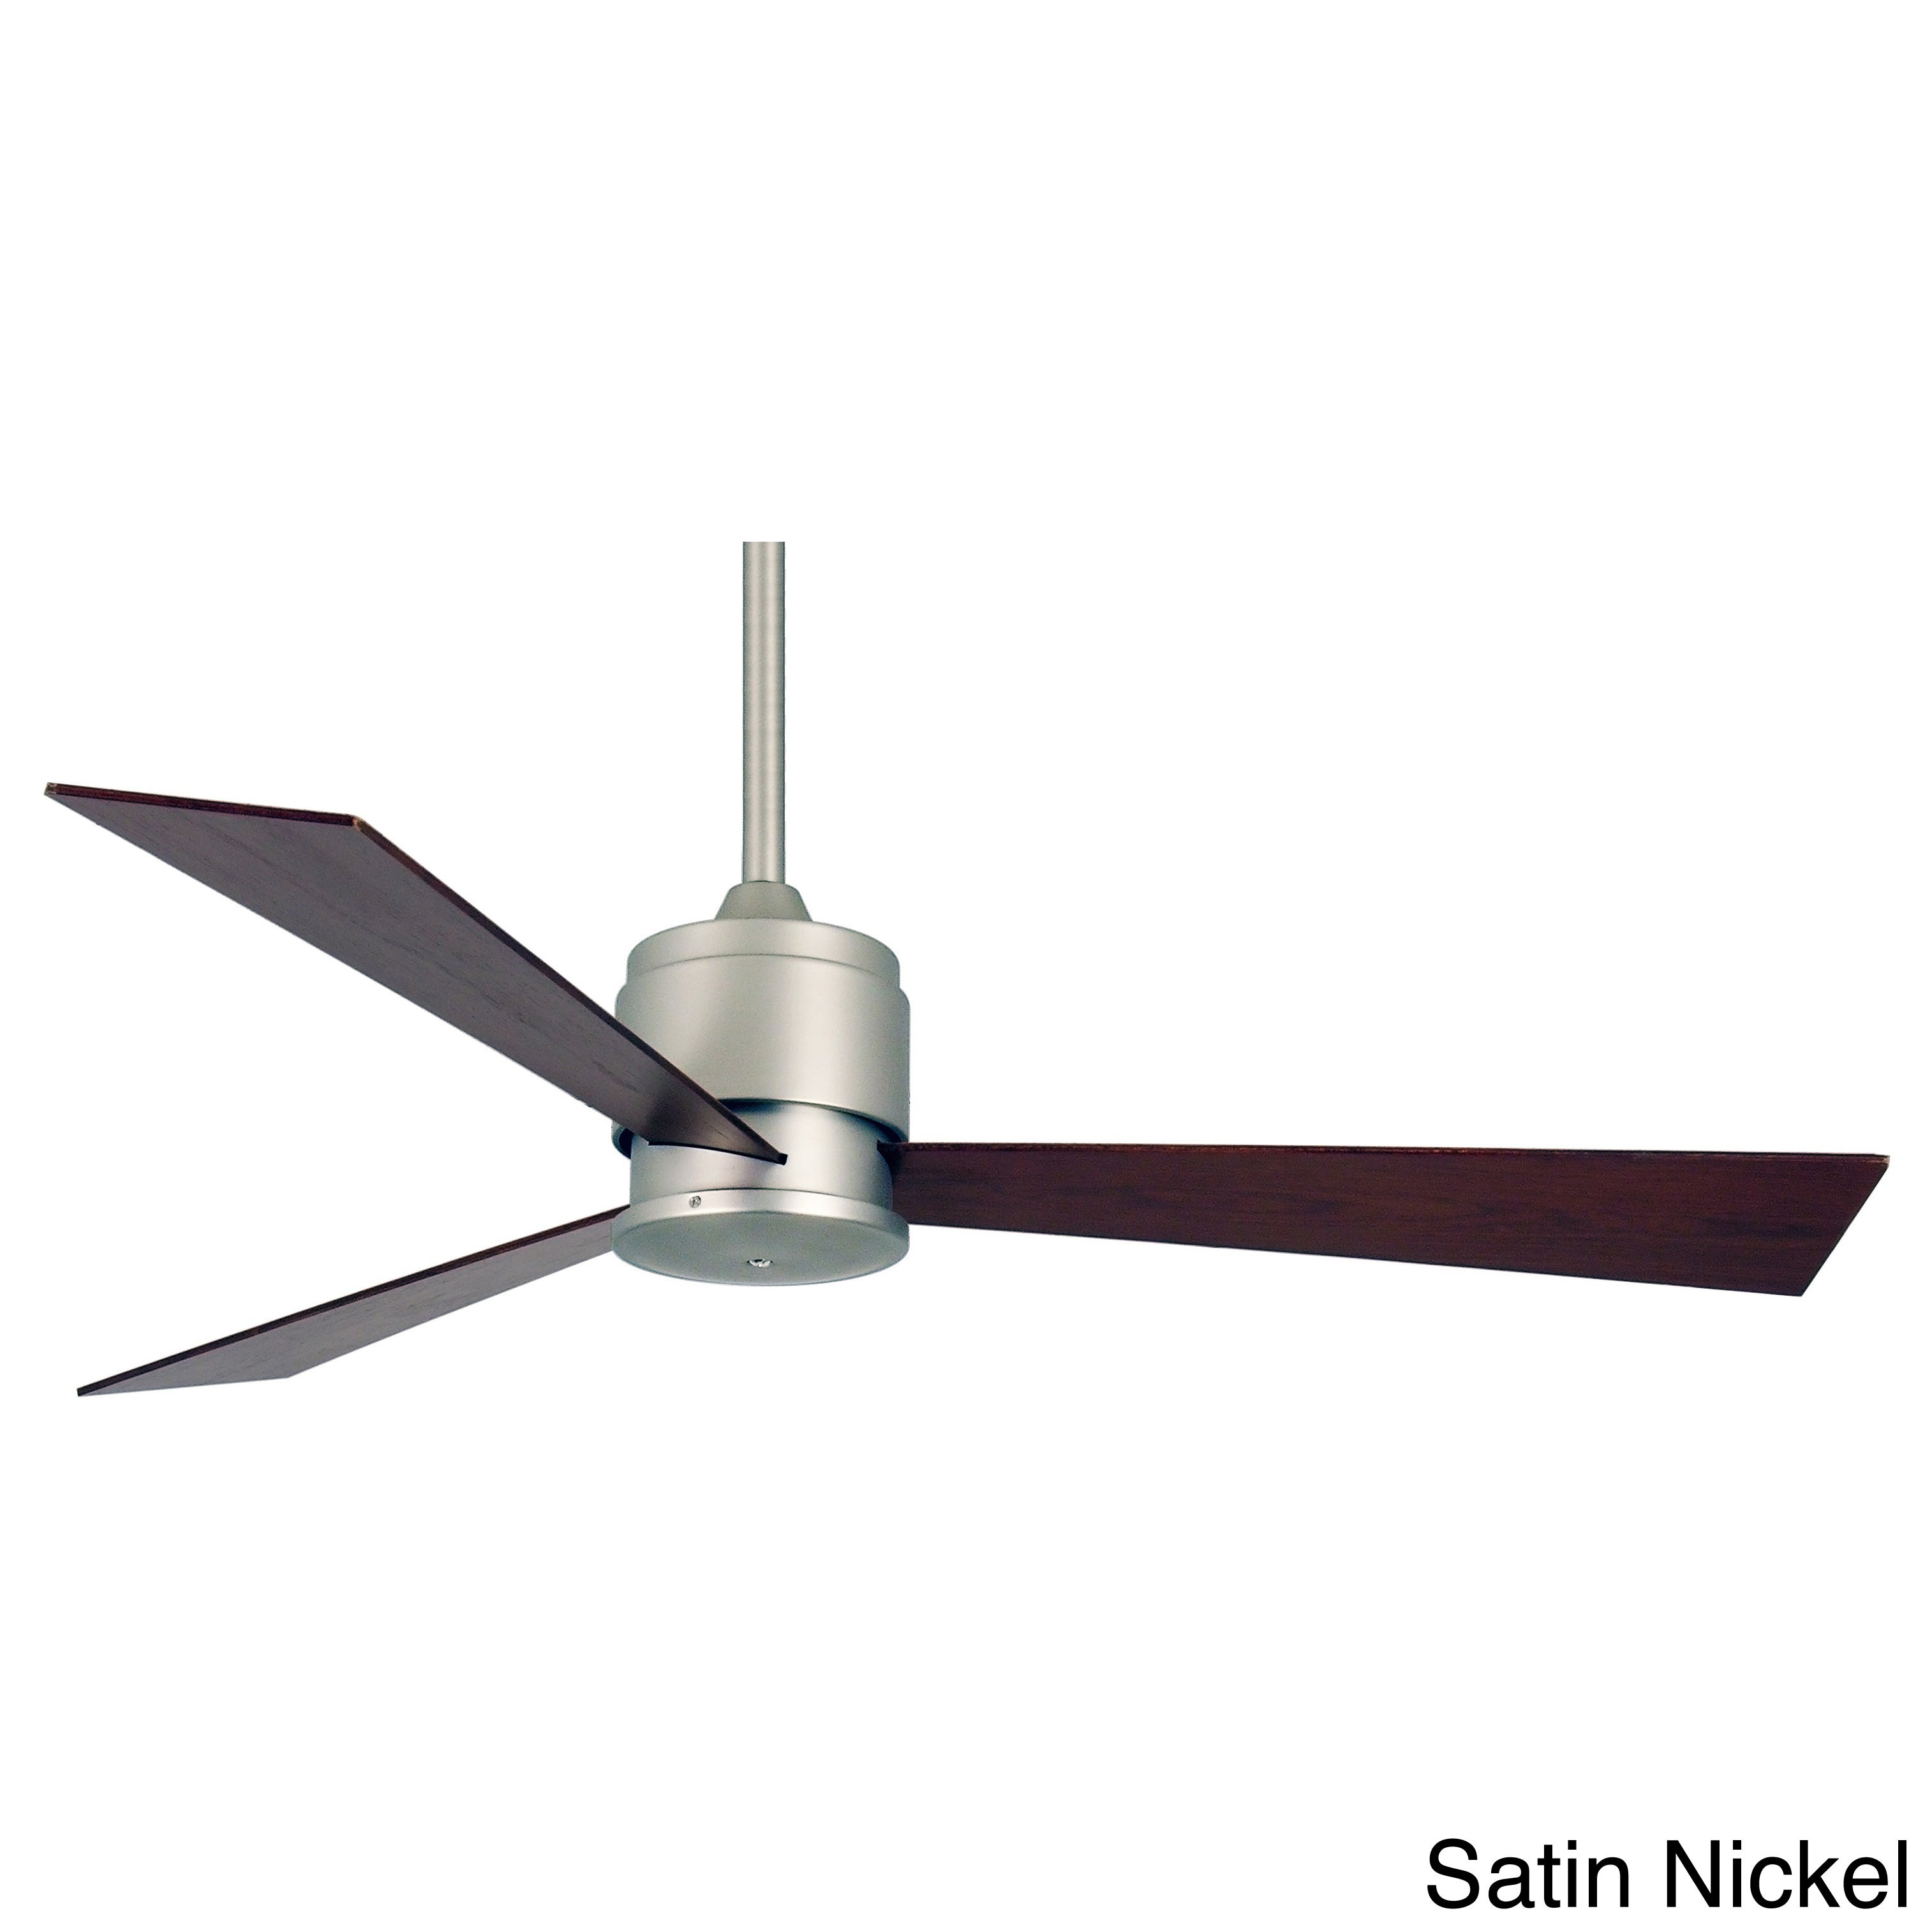 Fanimation zonix 54 inch ceiling fan free shipping today fanimation zonix 54 inch ceiling fan free shipping today overstock 15436277 aloadofball Choice Image